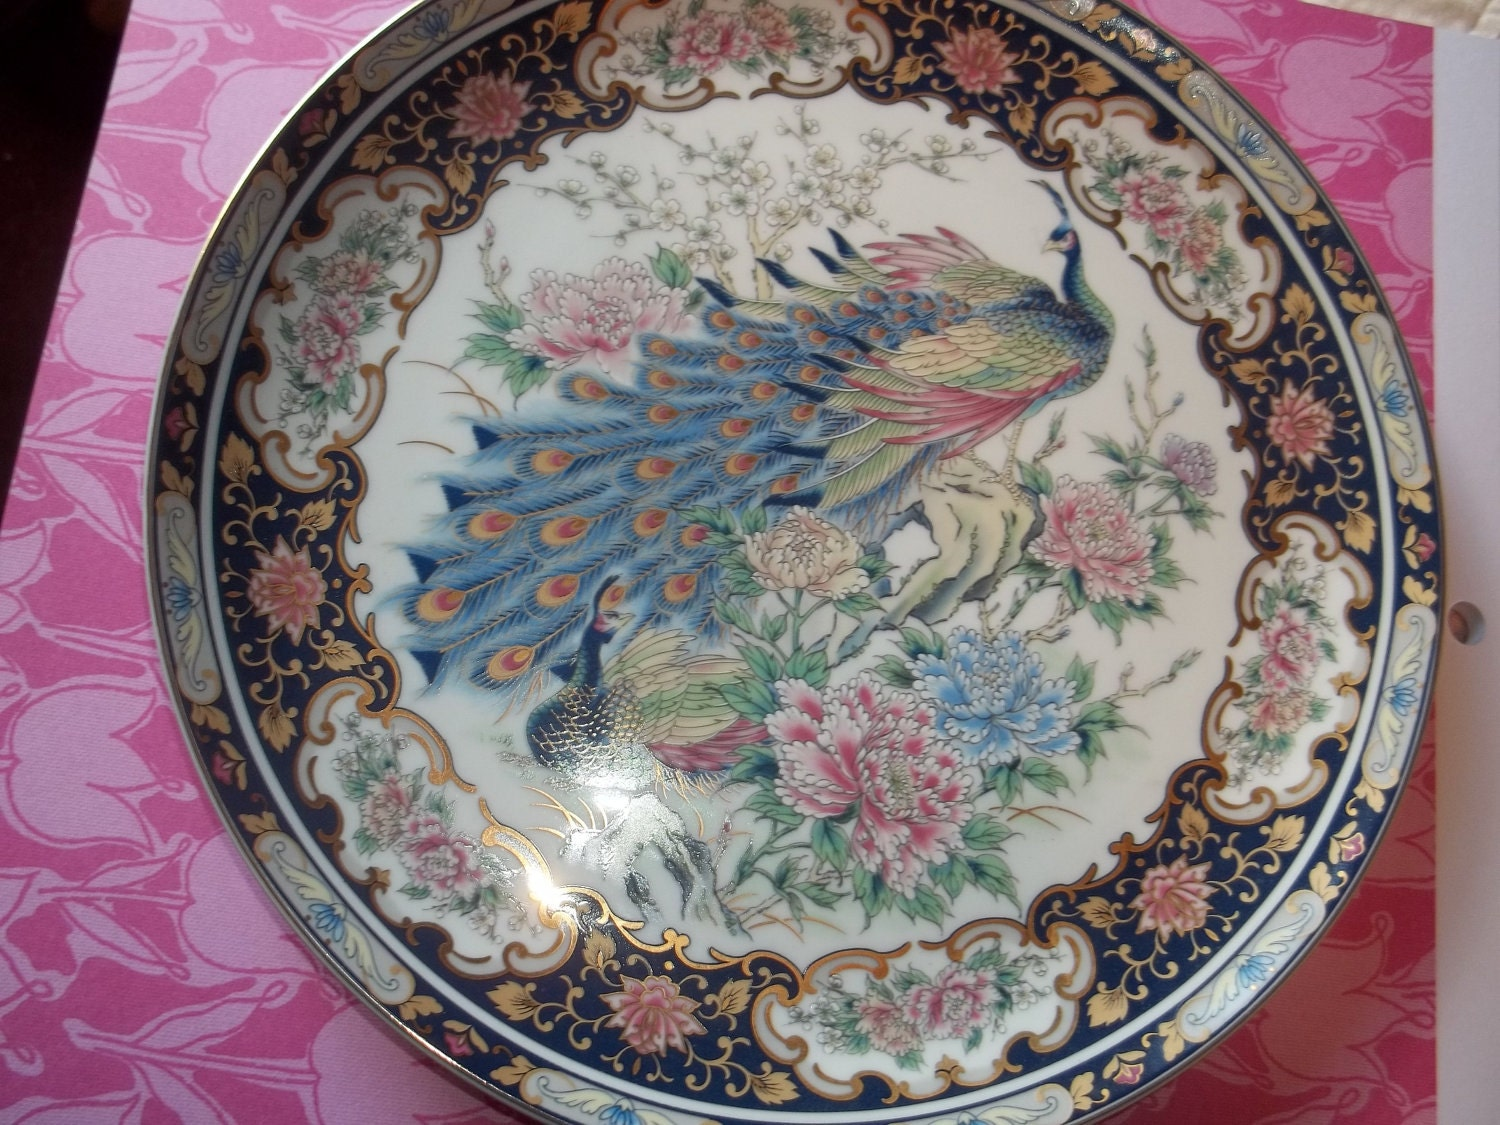 Japanese Toyo Decorative Plate Peacock Design By